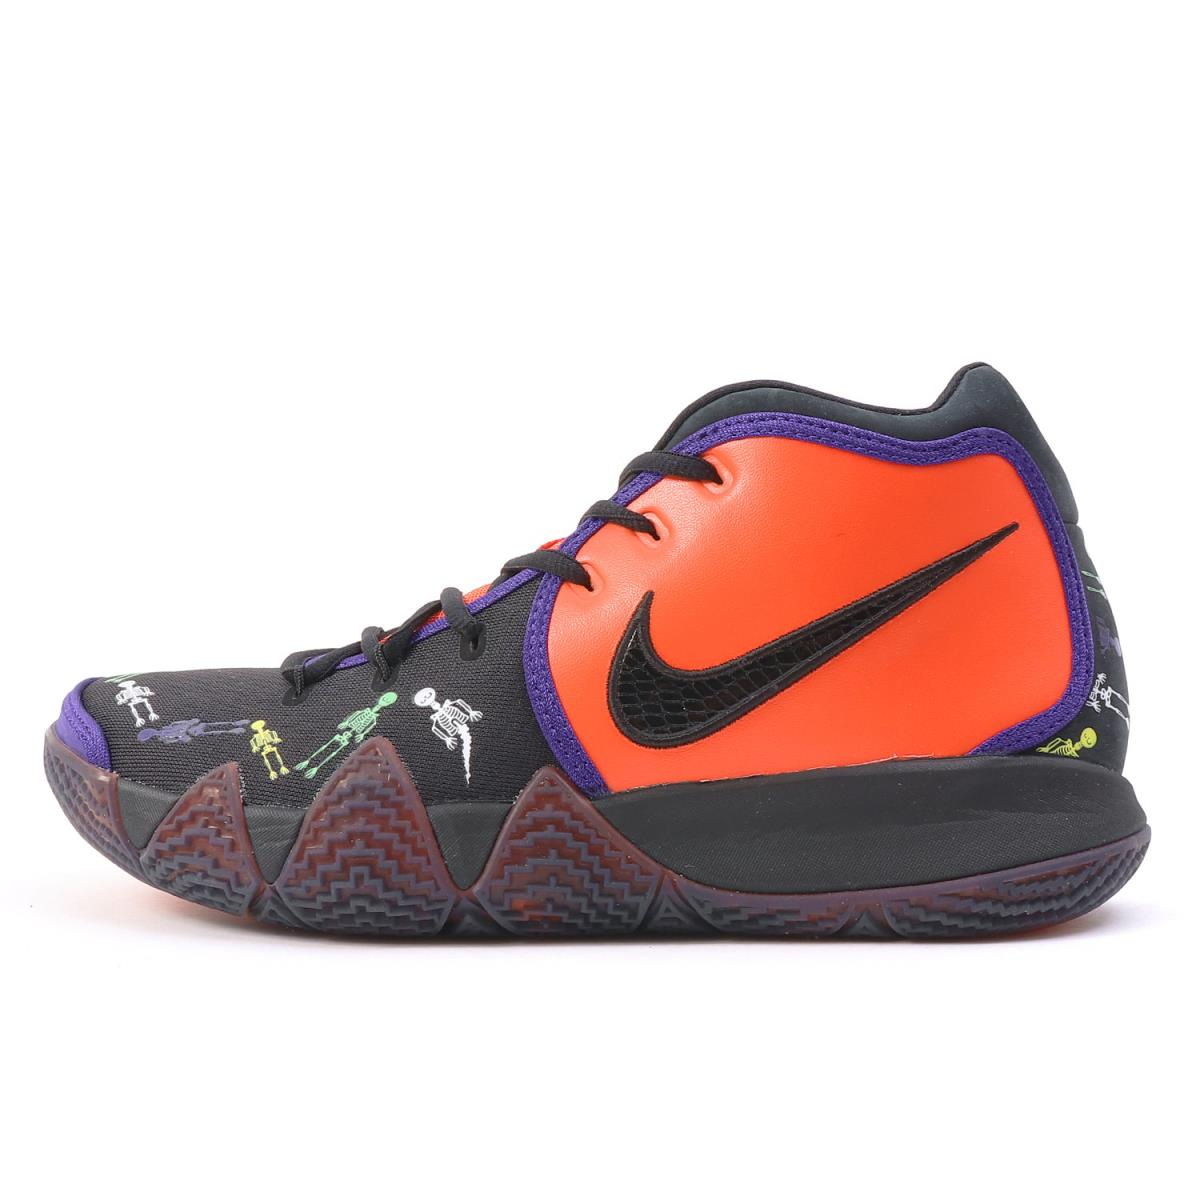 finest selection ebcb3 af188 NIKE (Nike) KYRIE 4 DOTD TV PE 1 DAY OF THE DEAD (CI0278-800) team orange X  black US9(27cm)